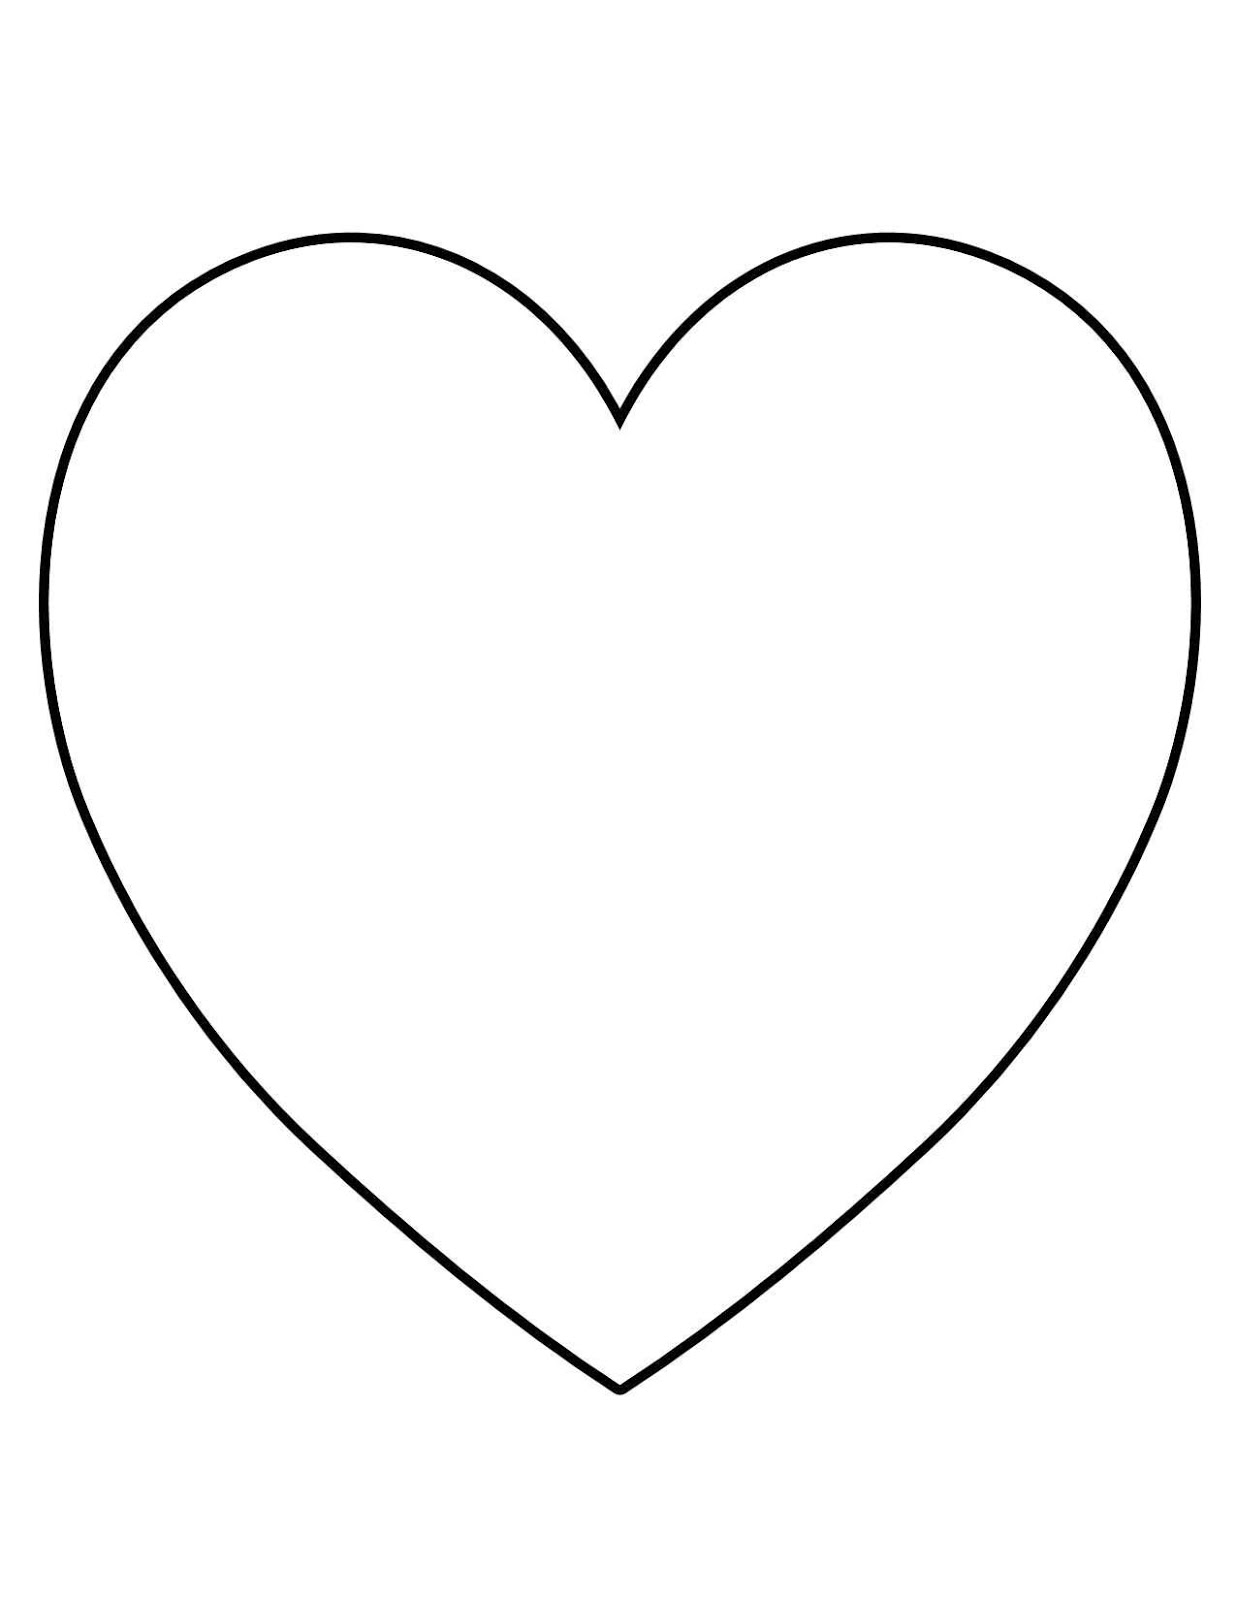 Heart-shaped clipart #13, Download drawings